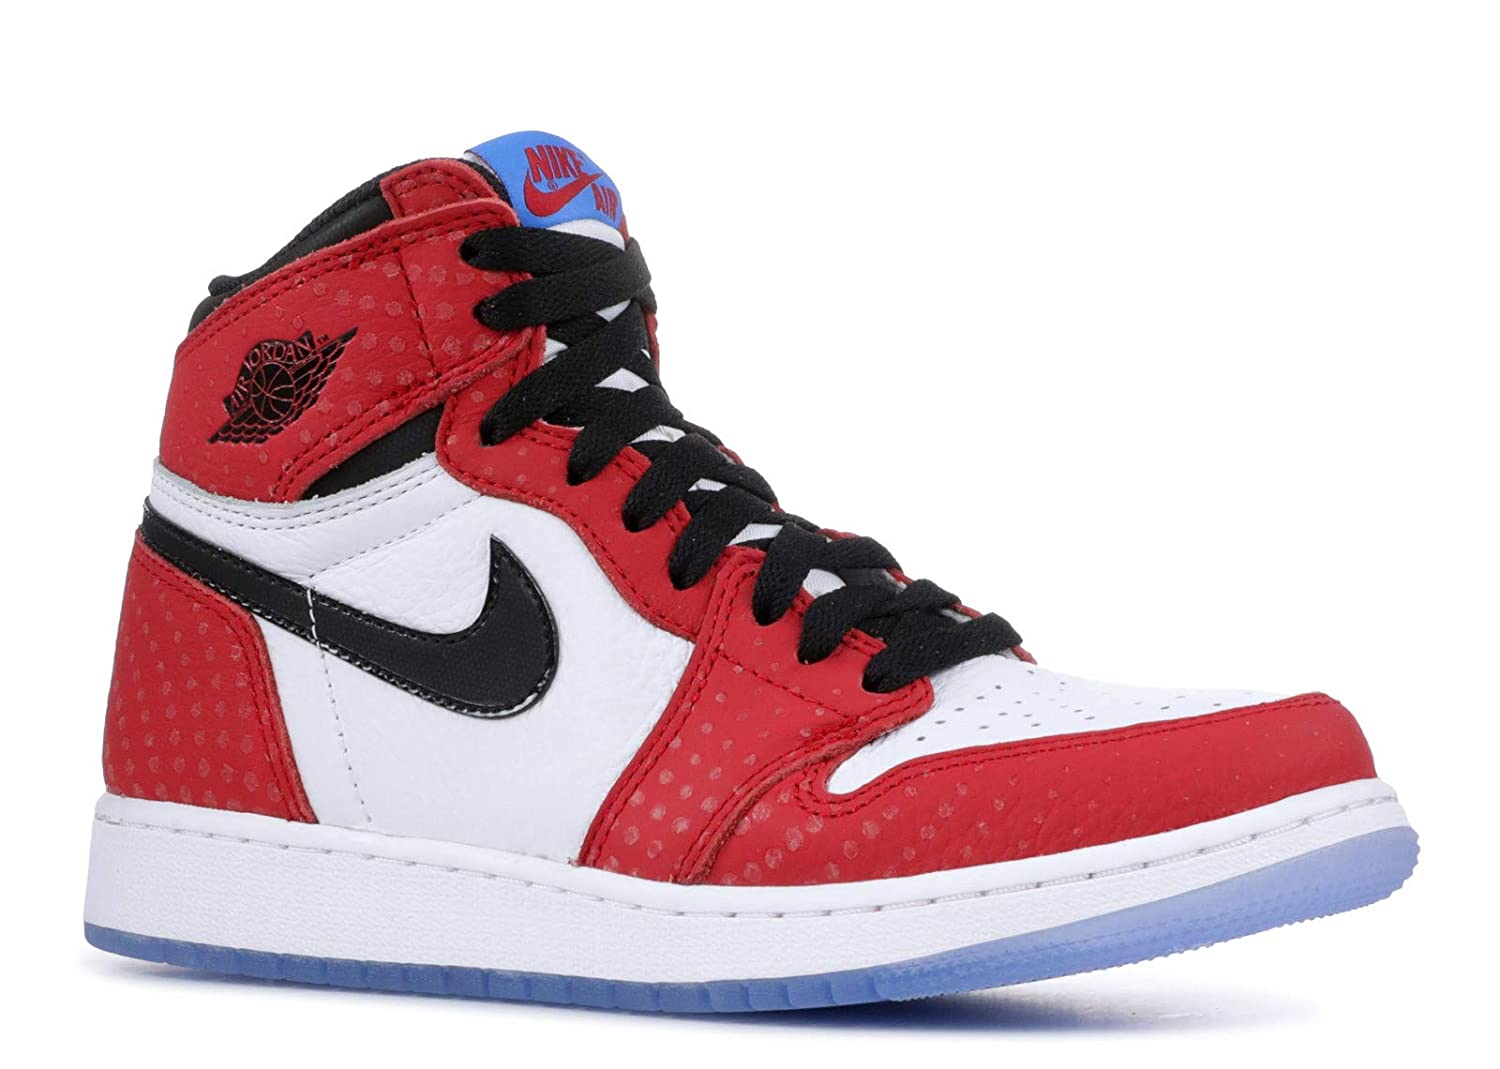 nouvelle arrivee a0647 d4bc5 Amazon.com | Air Jordan 1 Ret Hi Og (Gs) 'Spiderman ...